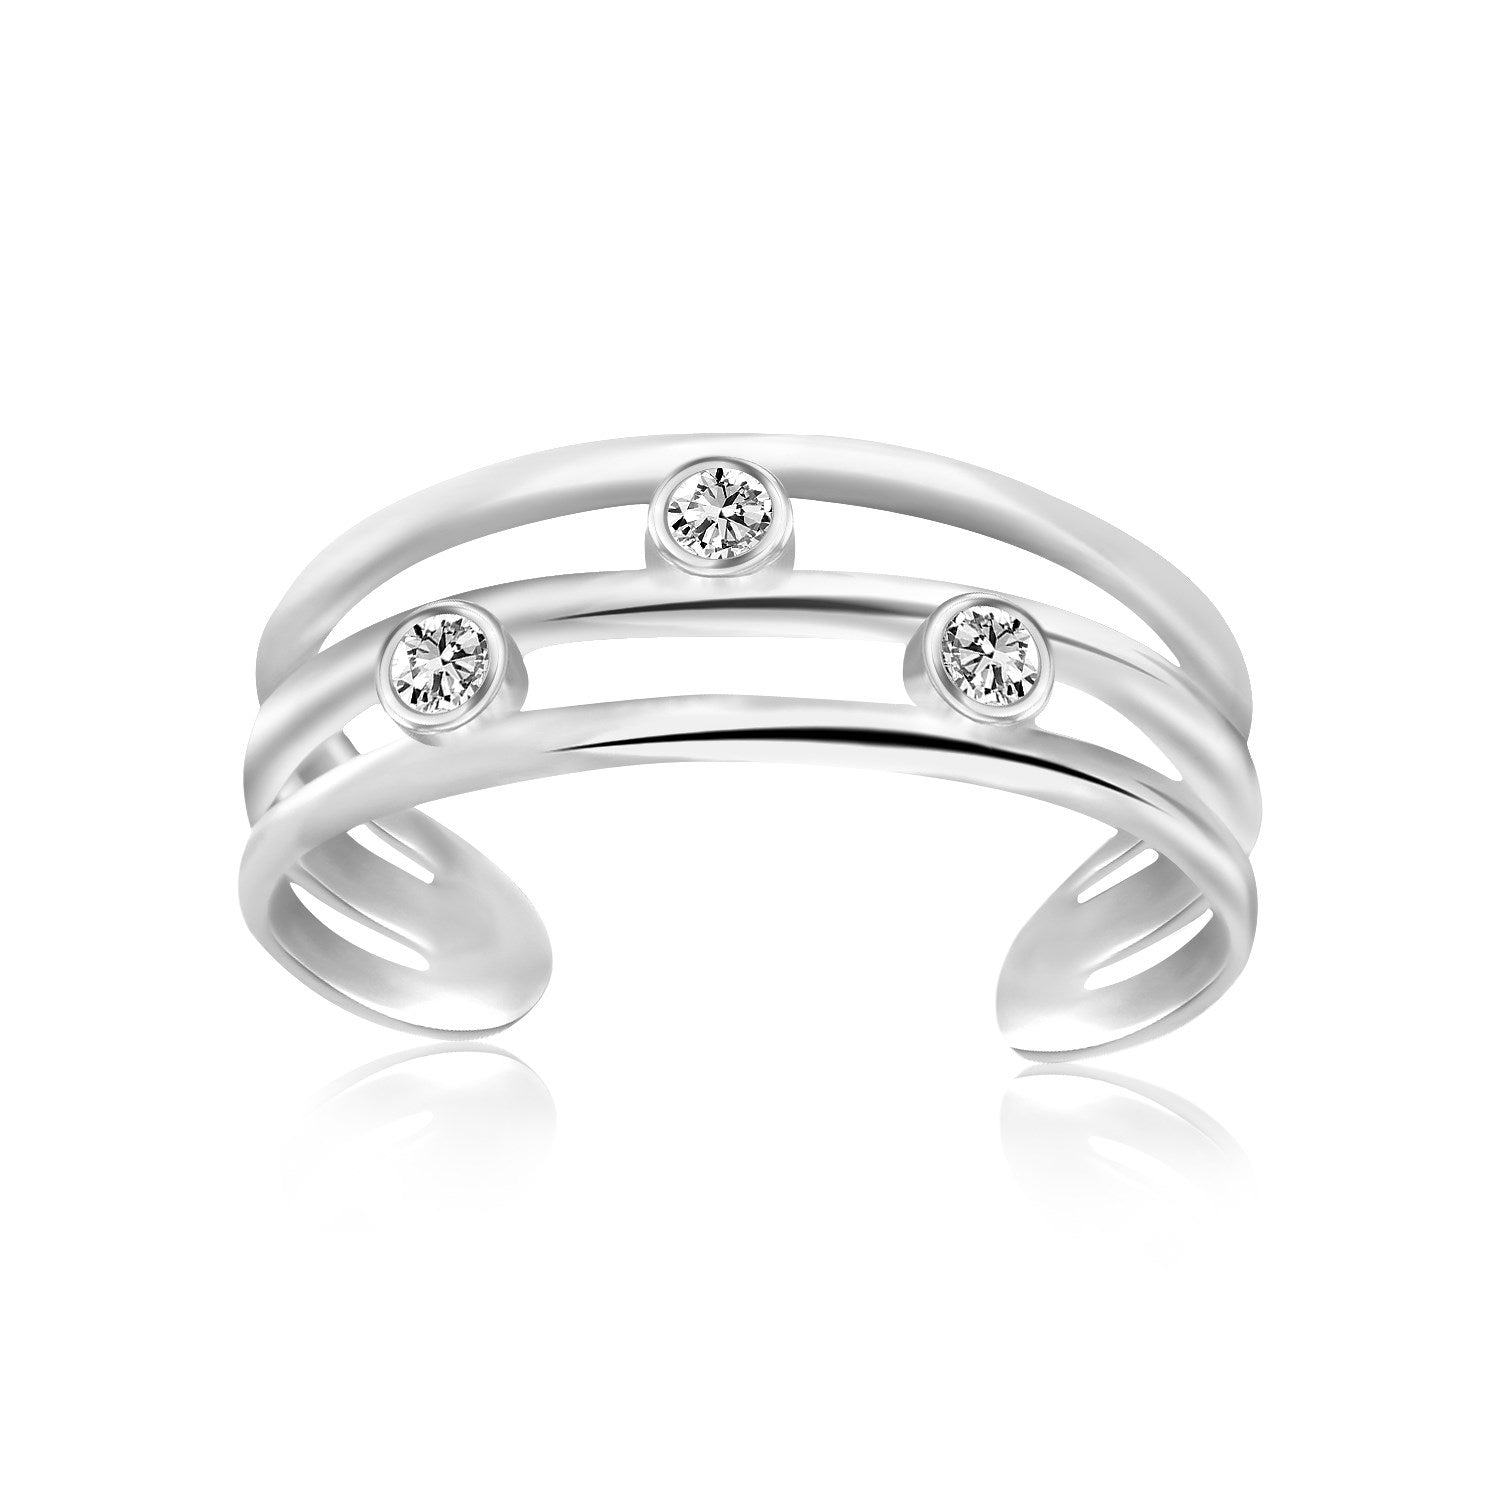 Sterling Silver Rhodium Plated Triple Line Open Motif Cubic Zirconia Toe Ring - Uniquepedia.com